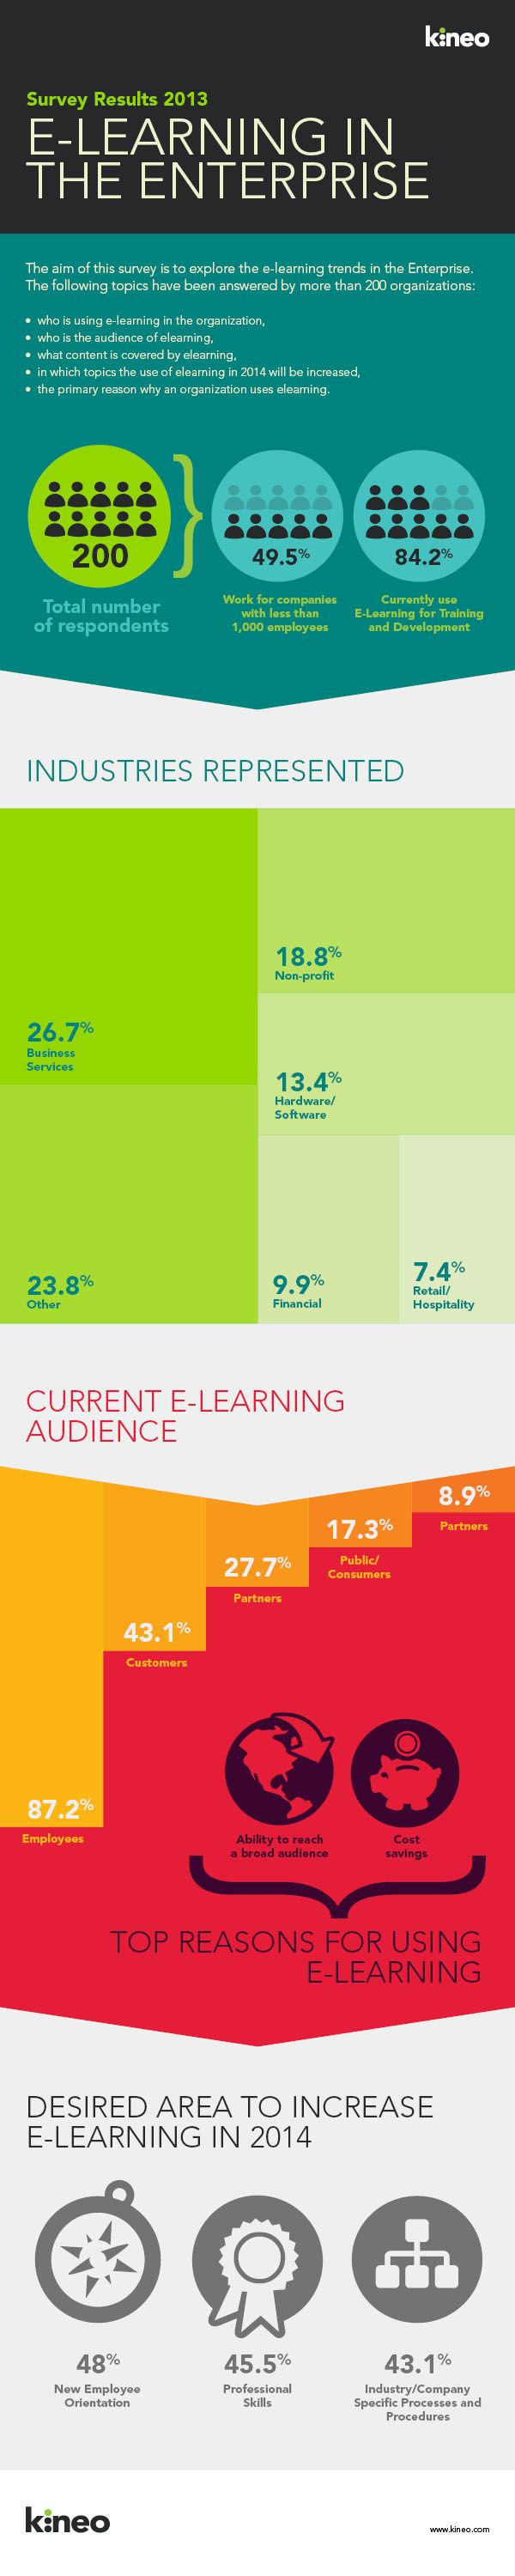 Kineo #eLearning in the Enterprise Survey Results 2013